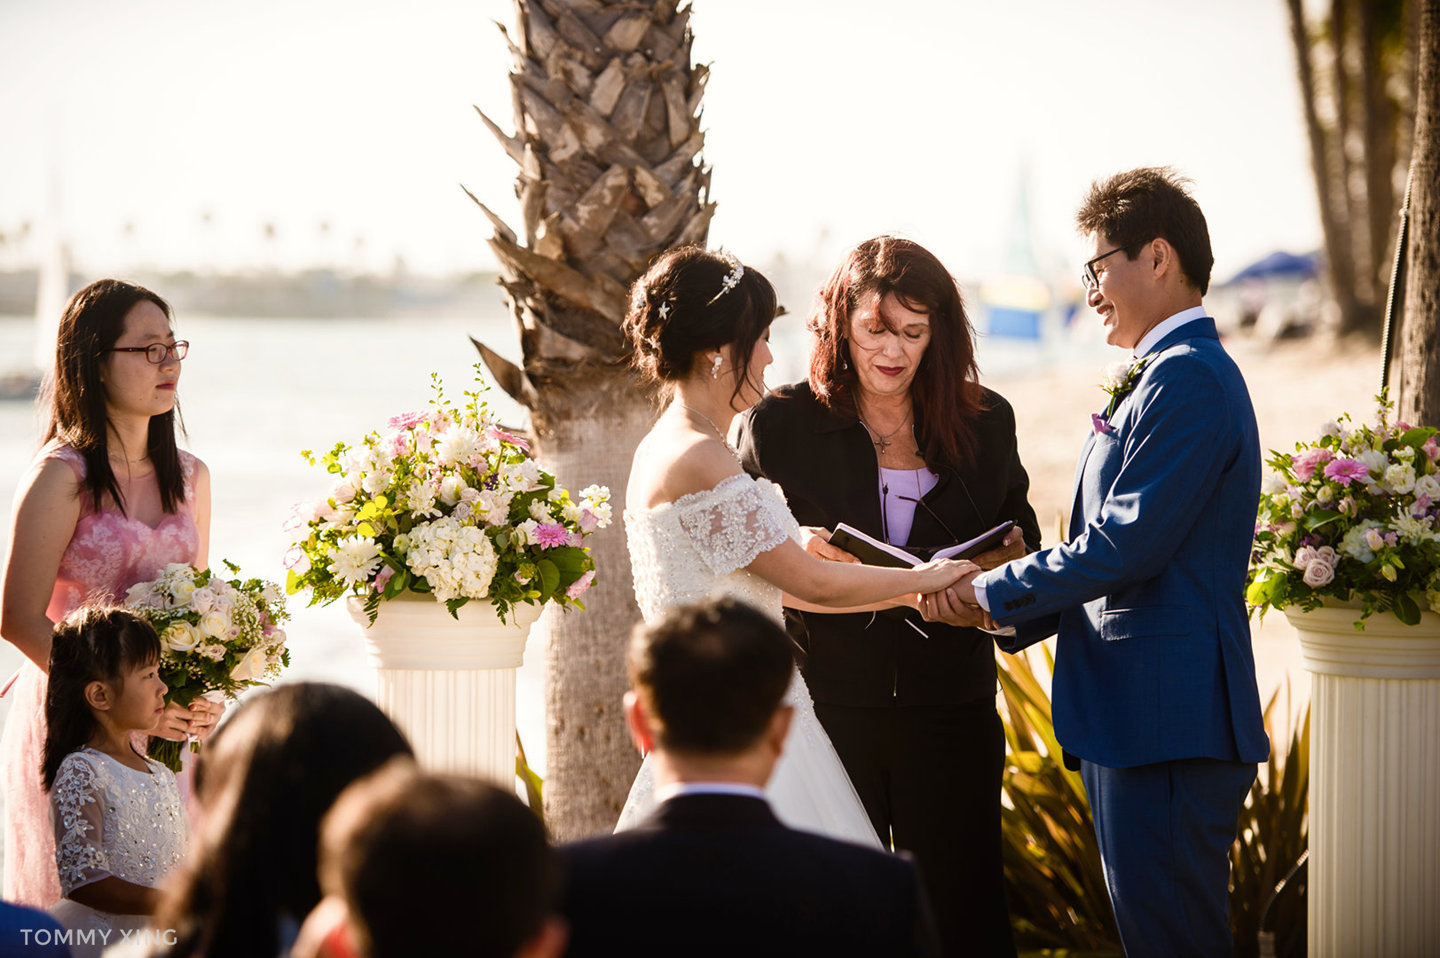 Paradise Point Resort Wedding Xiaolu & Bin San Diego 圣地亚哥婚礼摄影跟拍 Tommy Xing Photography 洛杉矶婚礼婚纱照摄影师 149.jpg